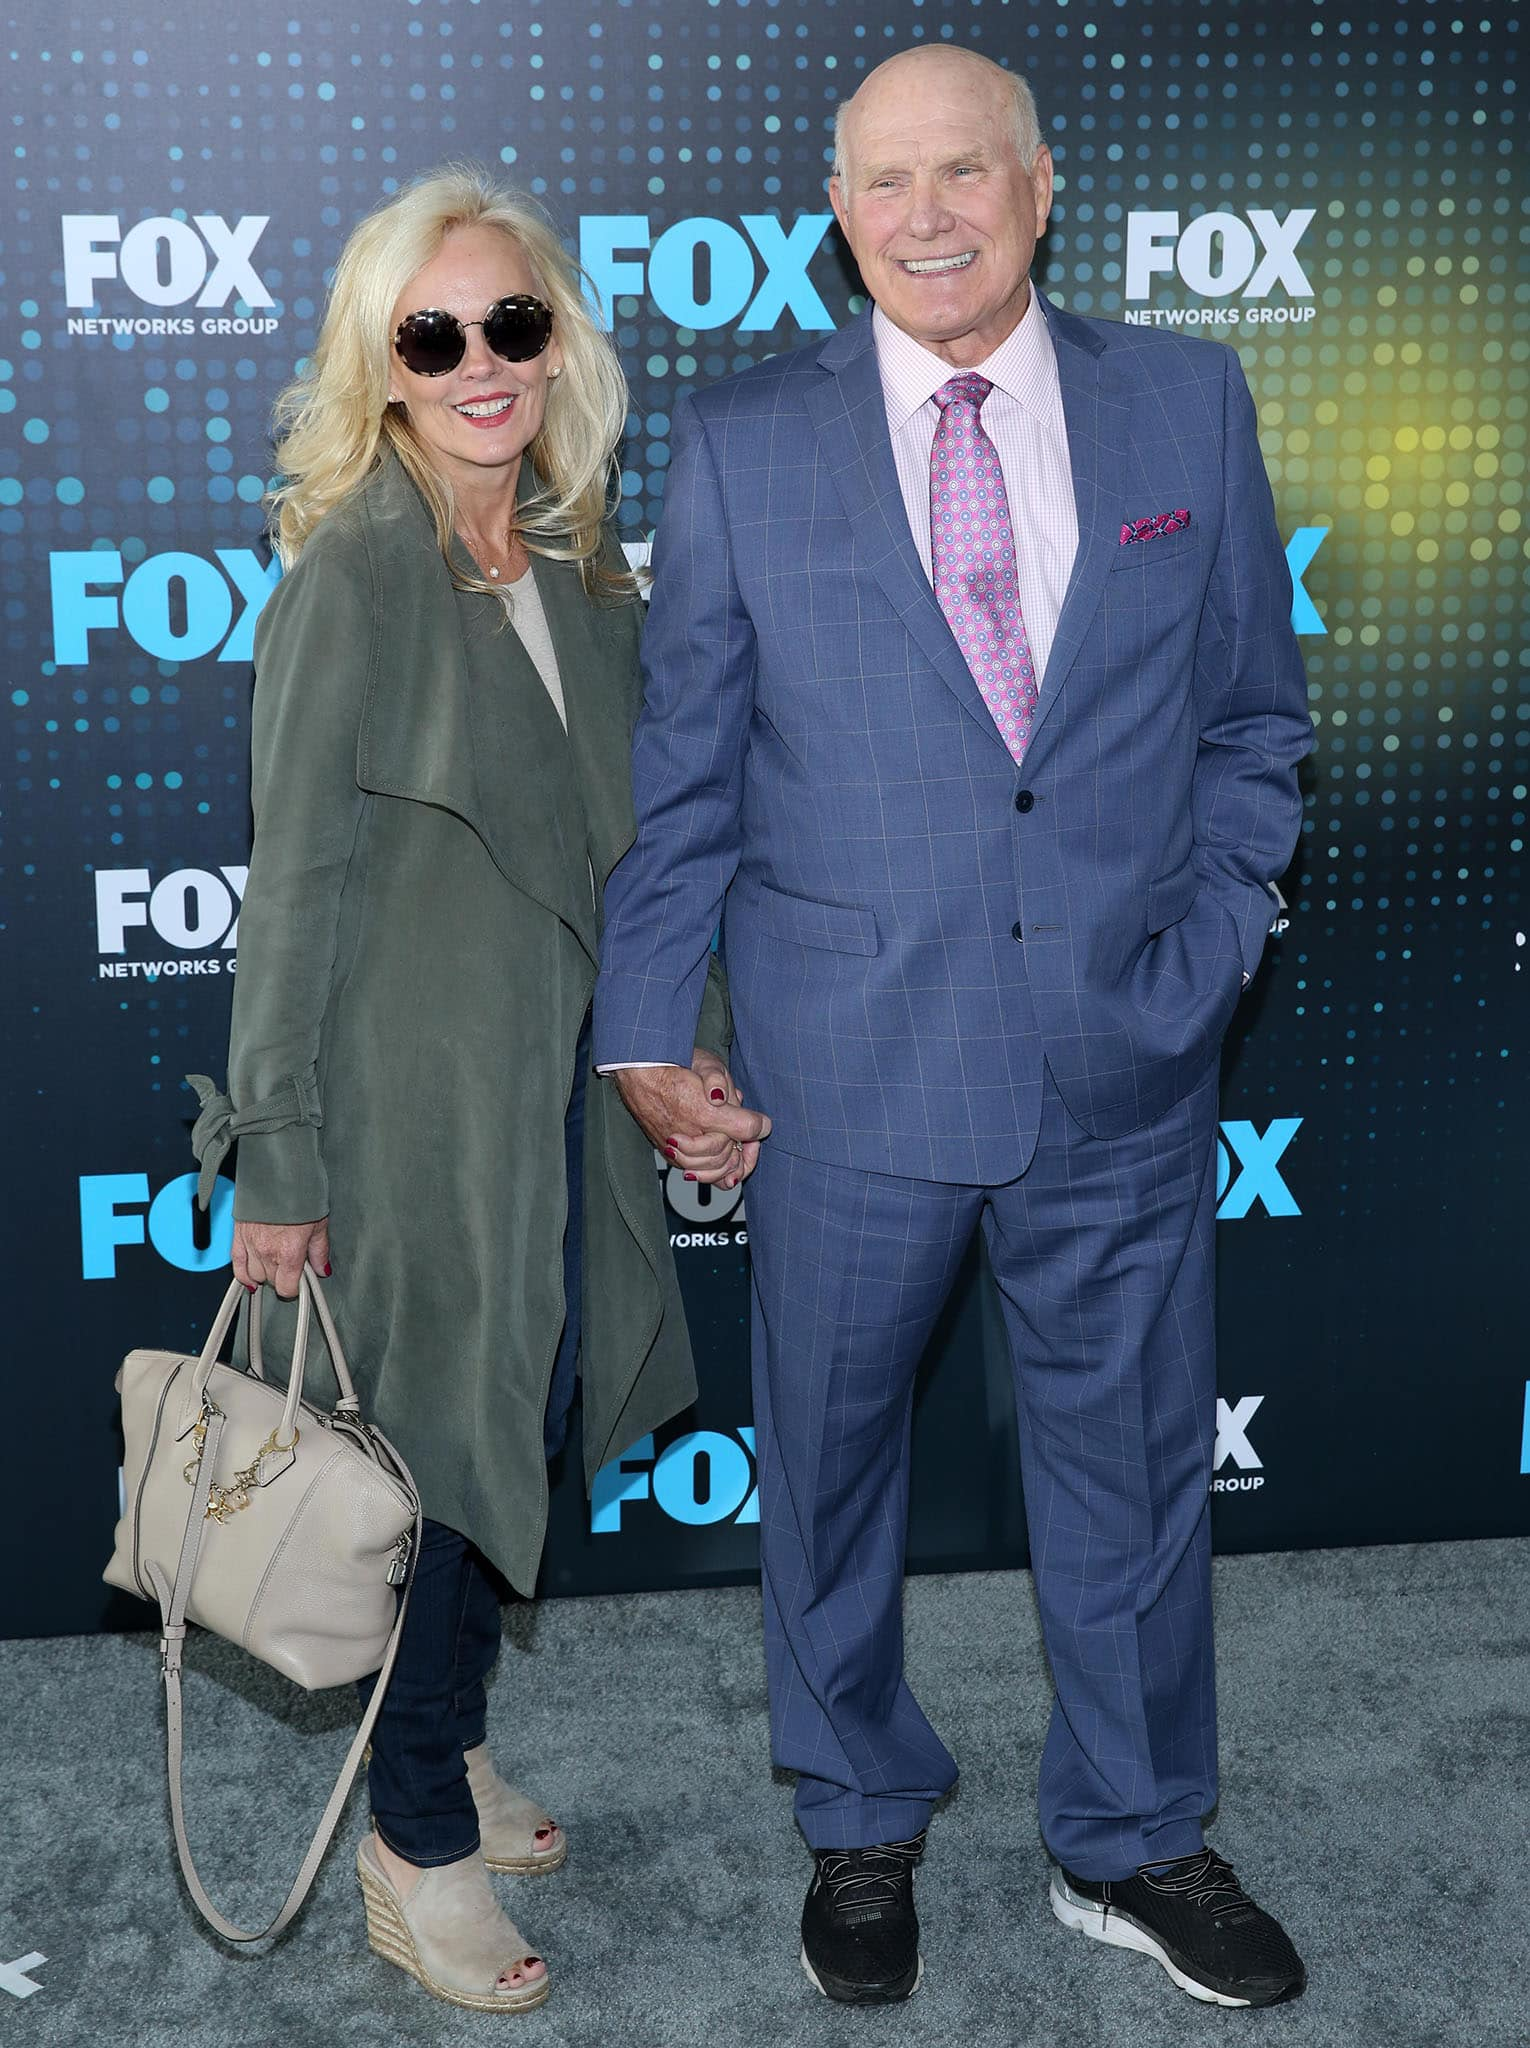 Tammy Bradshaw and Terry Bradshaw, pictured at the 2017 FOX Upfront, are involved in charitable organizations